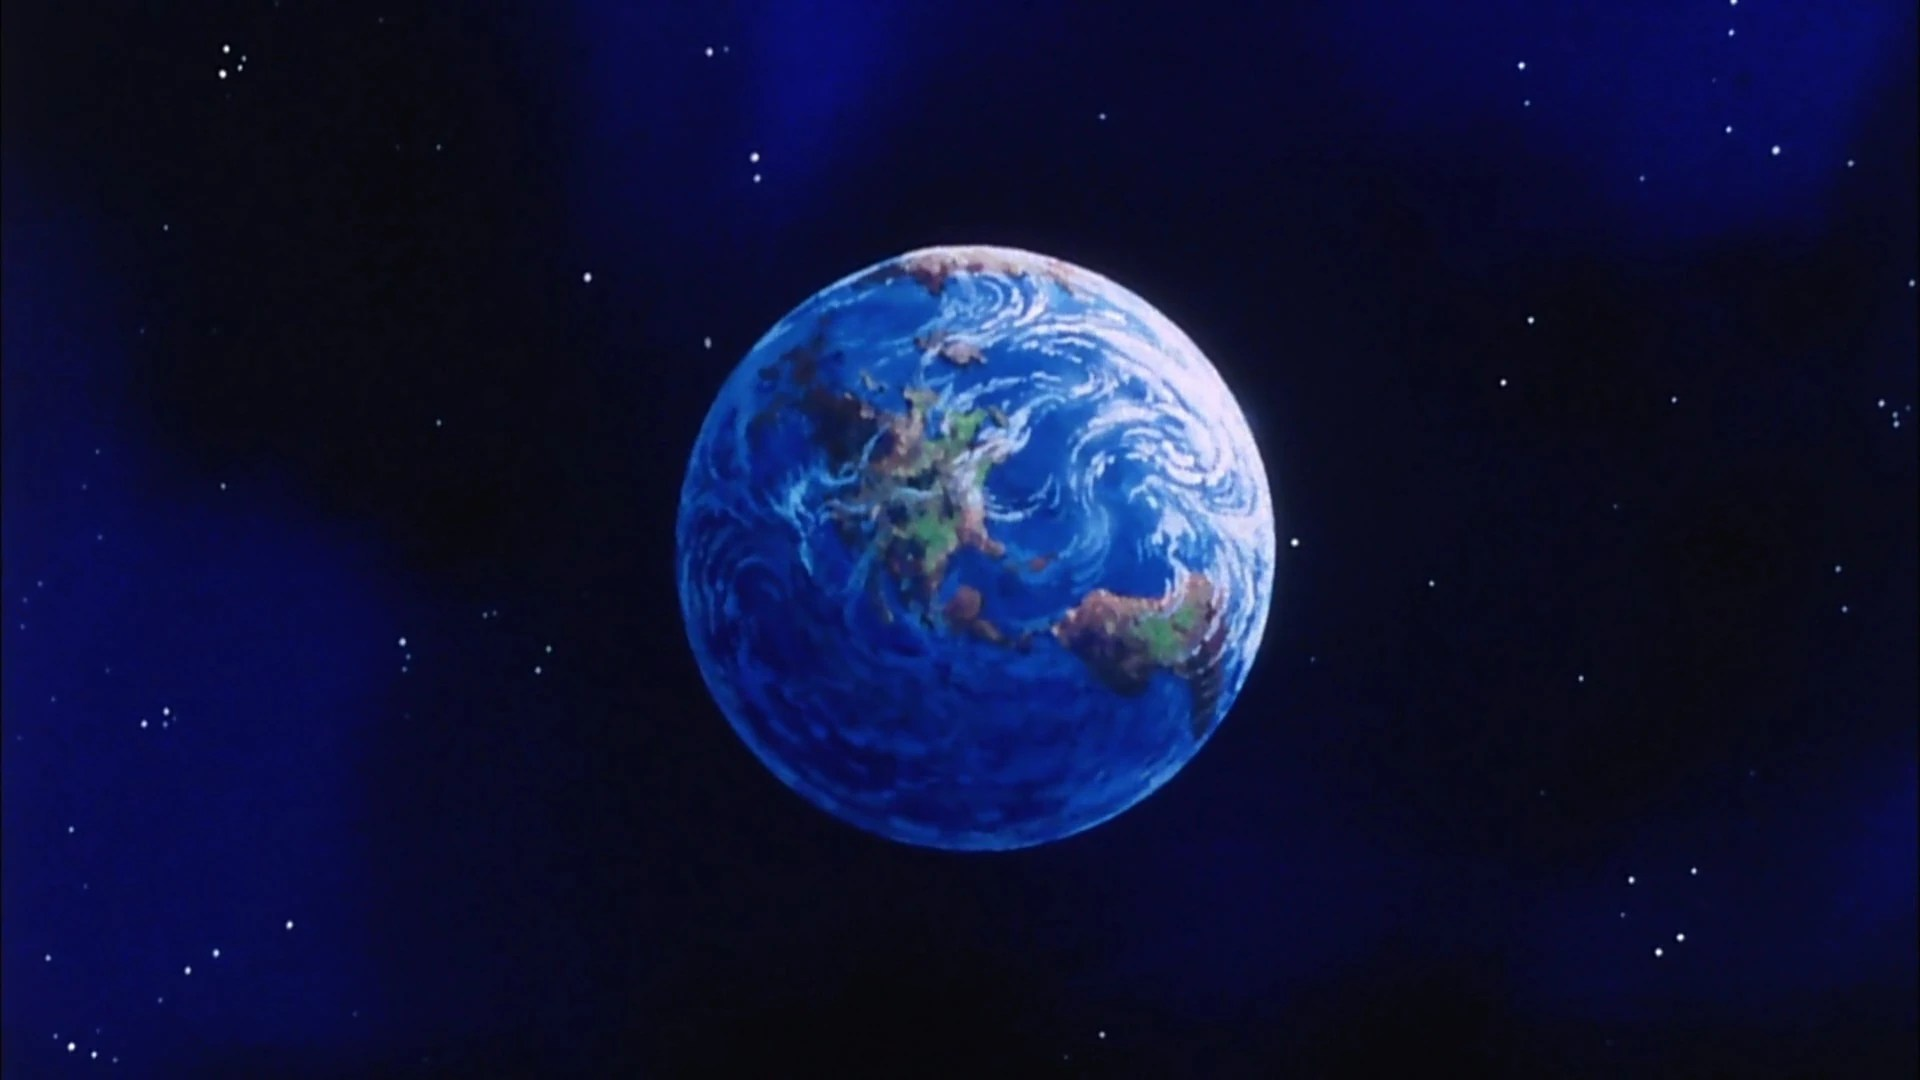 3d Wallpaper Of Dragon Ball Z Dragon Planet Wiki About Dragon Planet Wiki Fandom